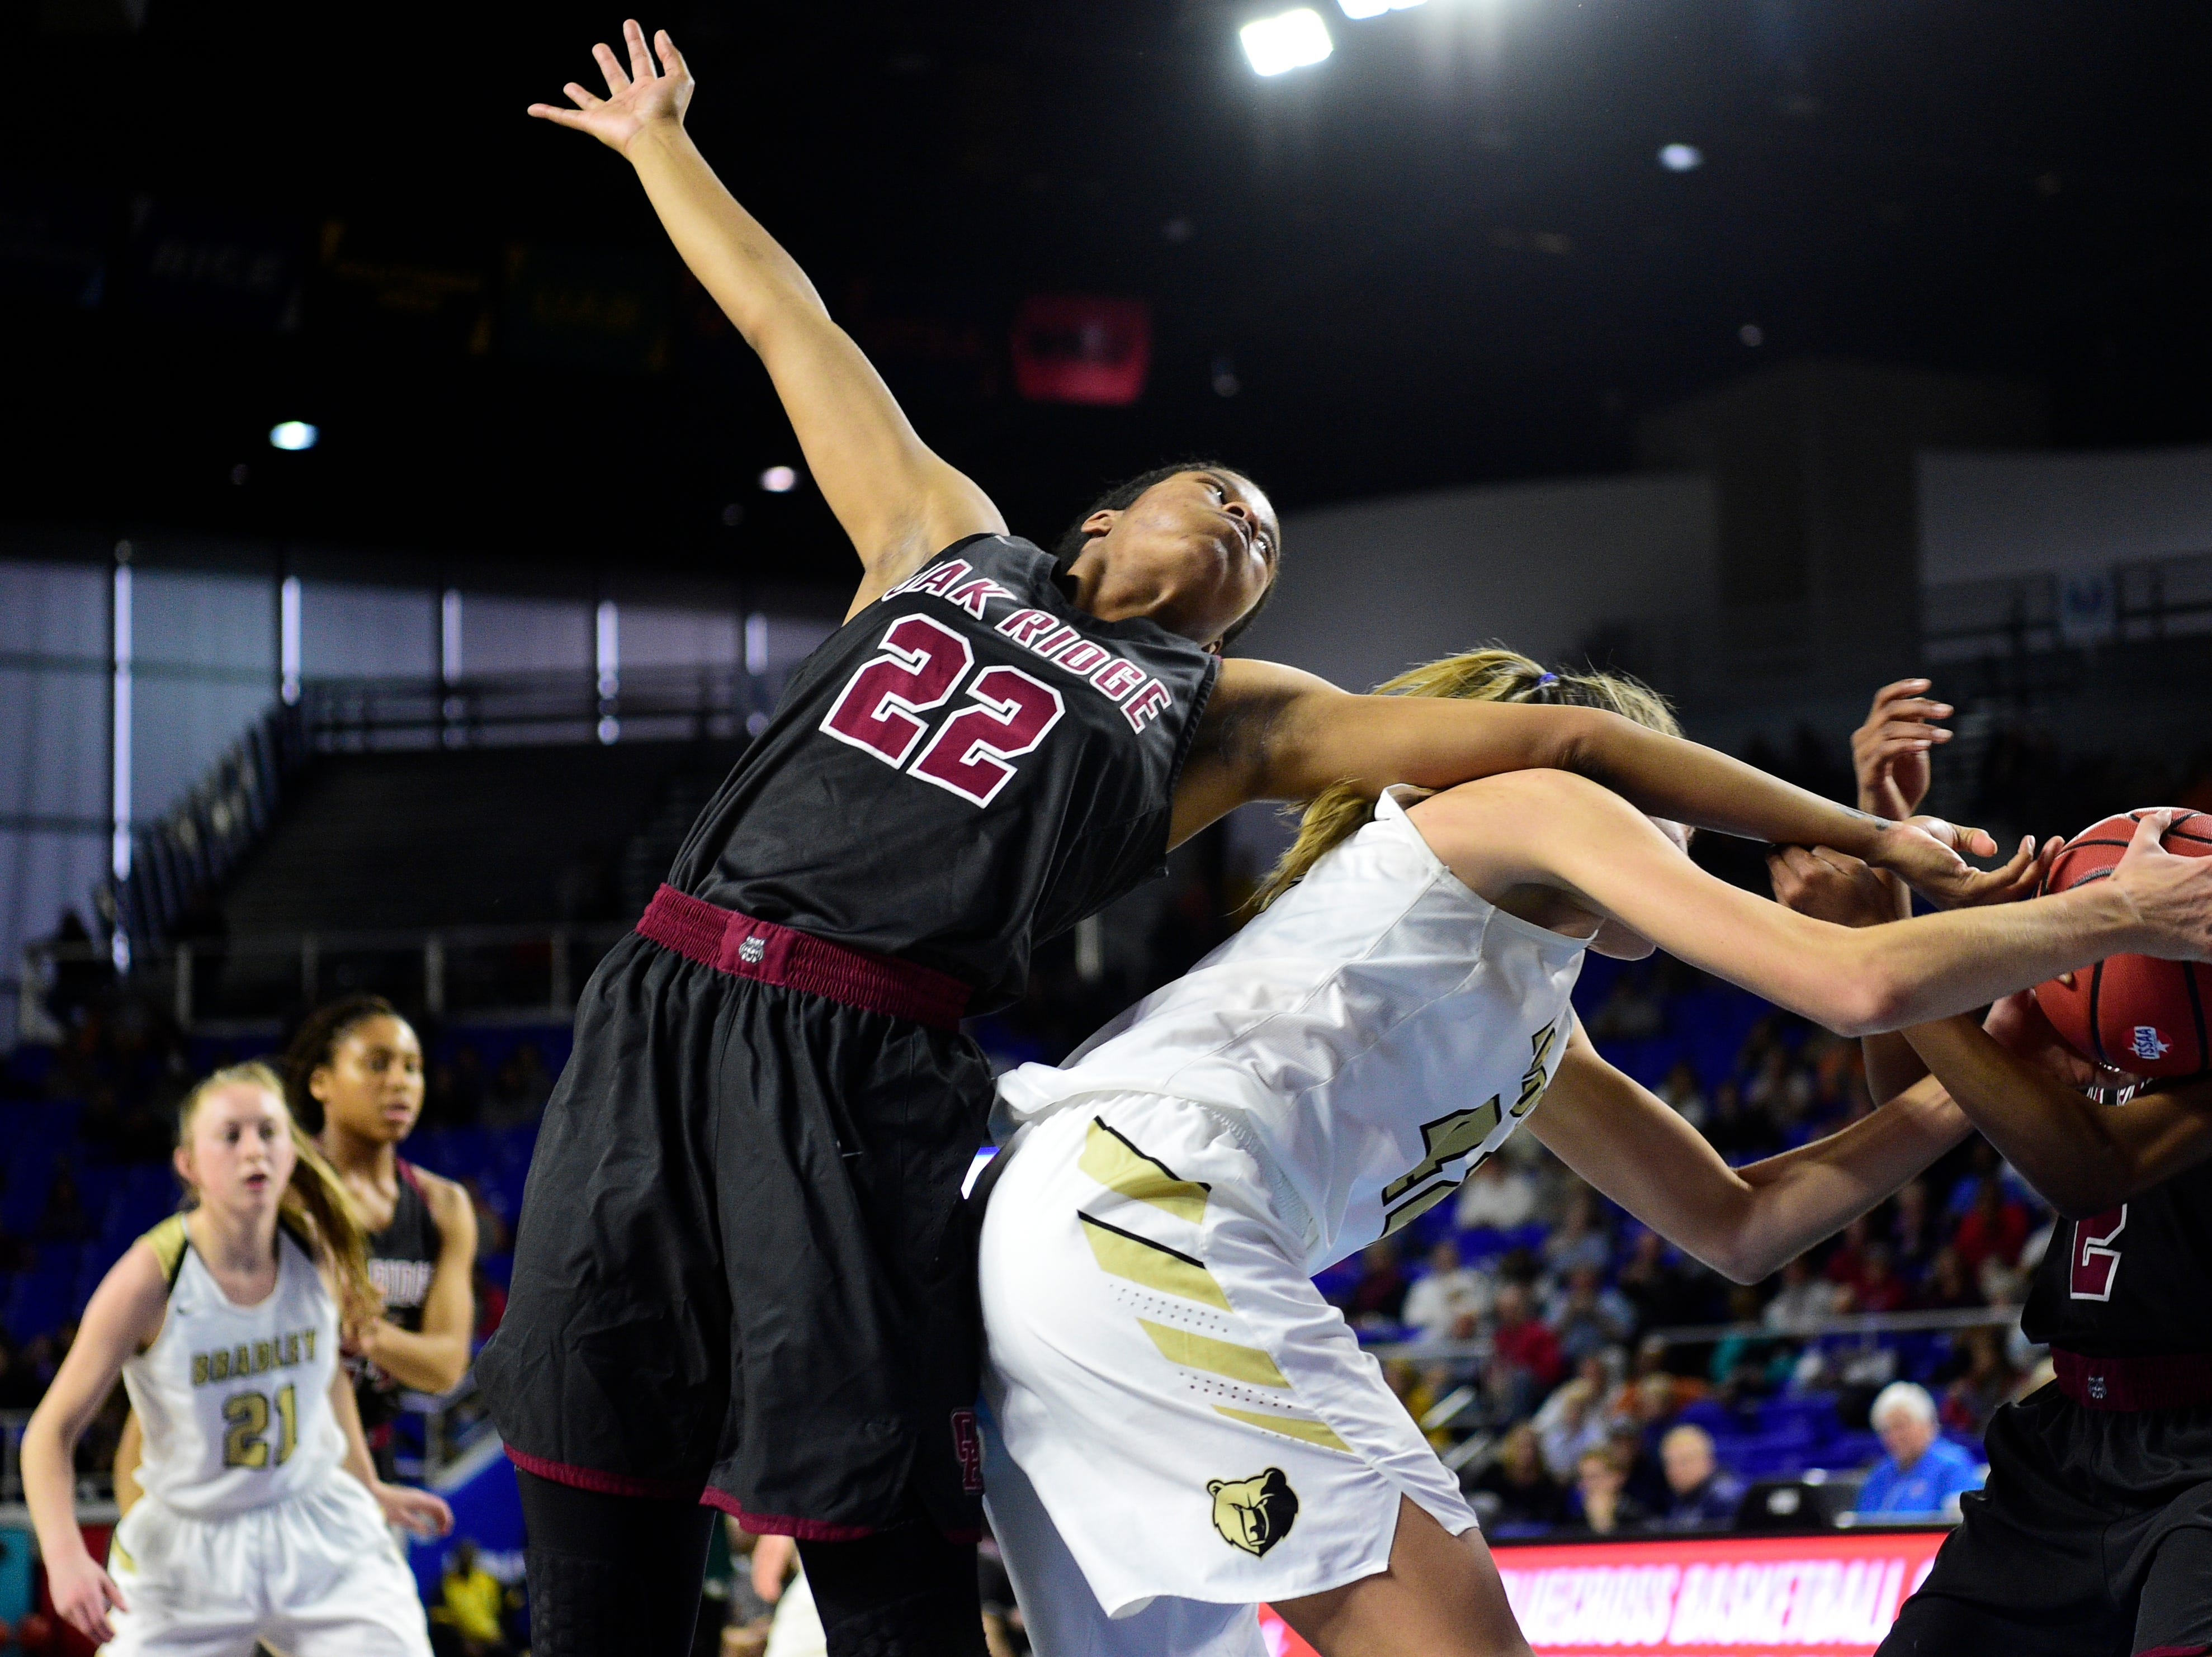 Oak Ridge's Shatyrah Copeland (22) defends against Bradley Central's Anna Walker (42) during a game between Oak Ridge and Bradley Central at the TSSAA girls state tournament at the Murphy Center in Murfreesboro, Tennessee on Friday, March 8, 2019.